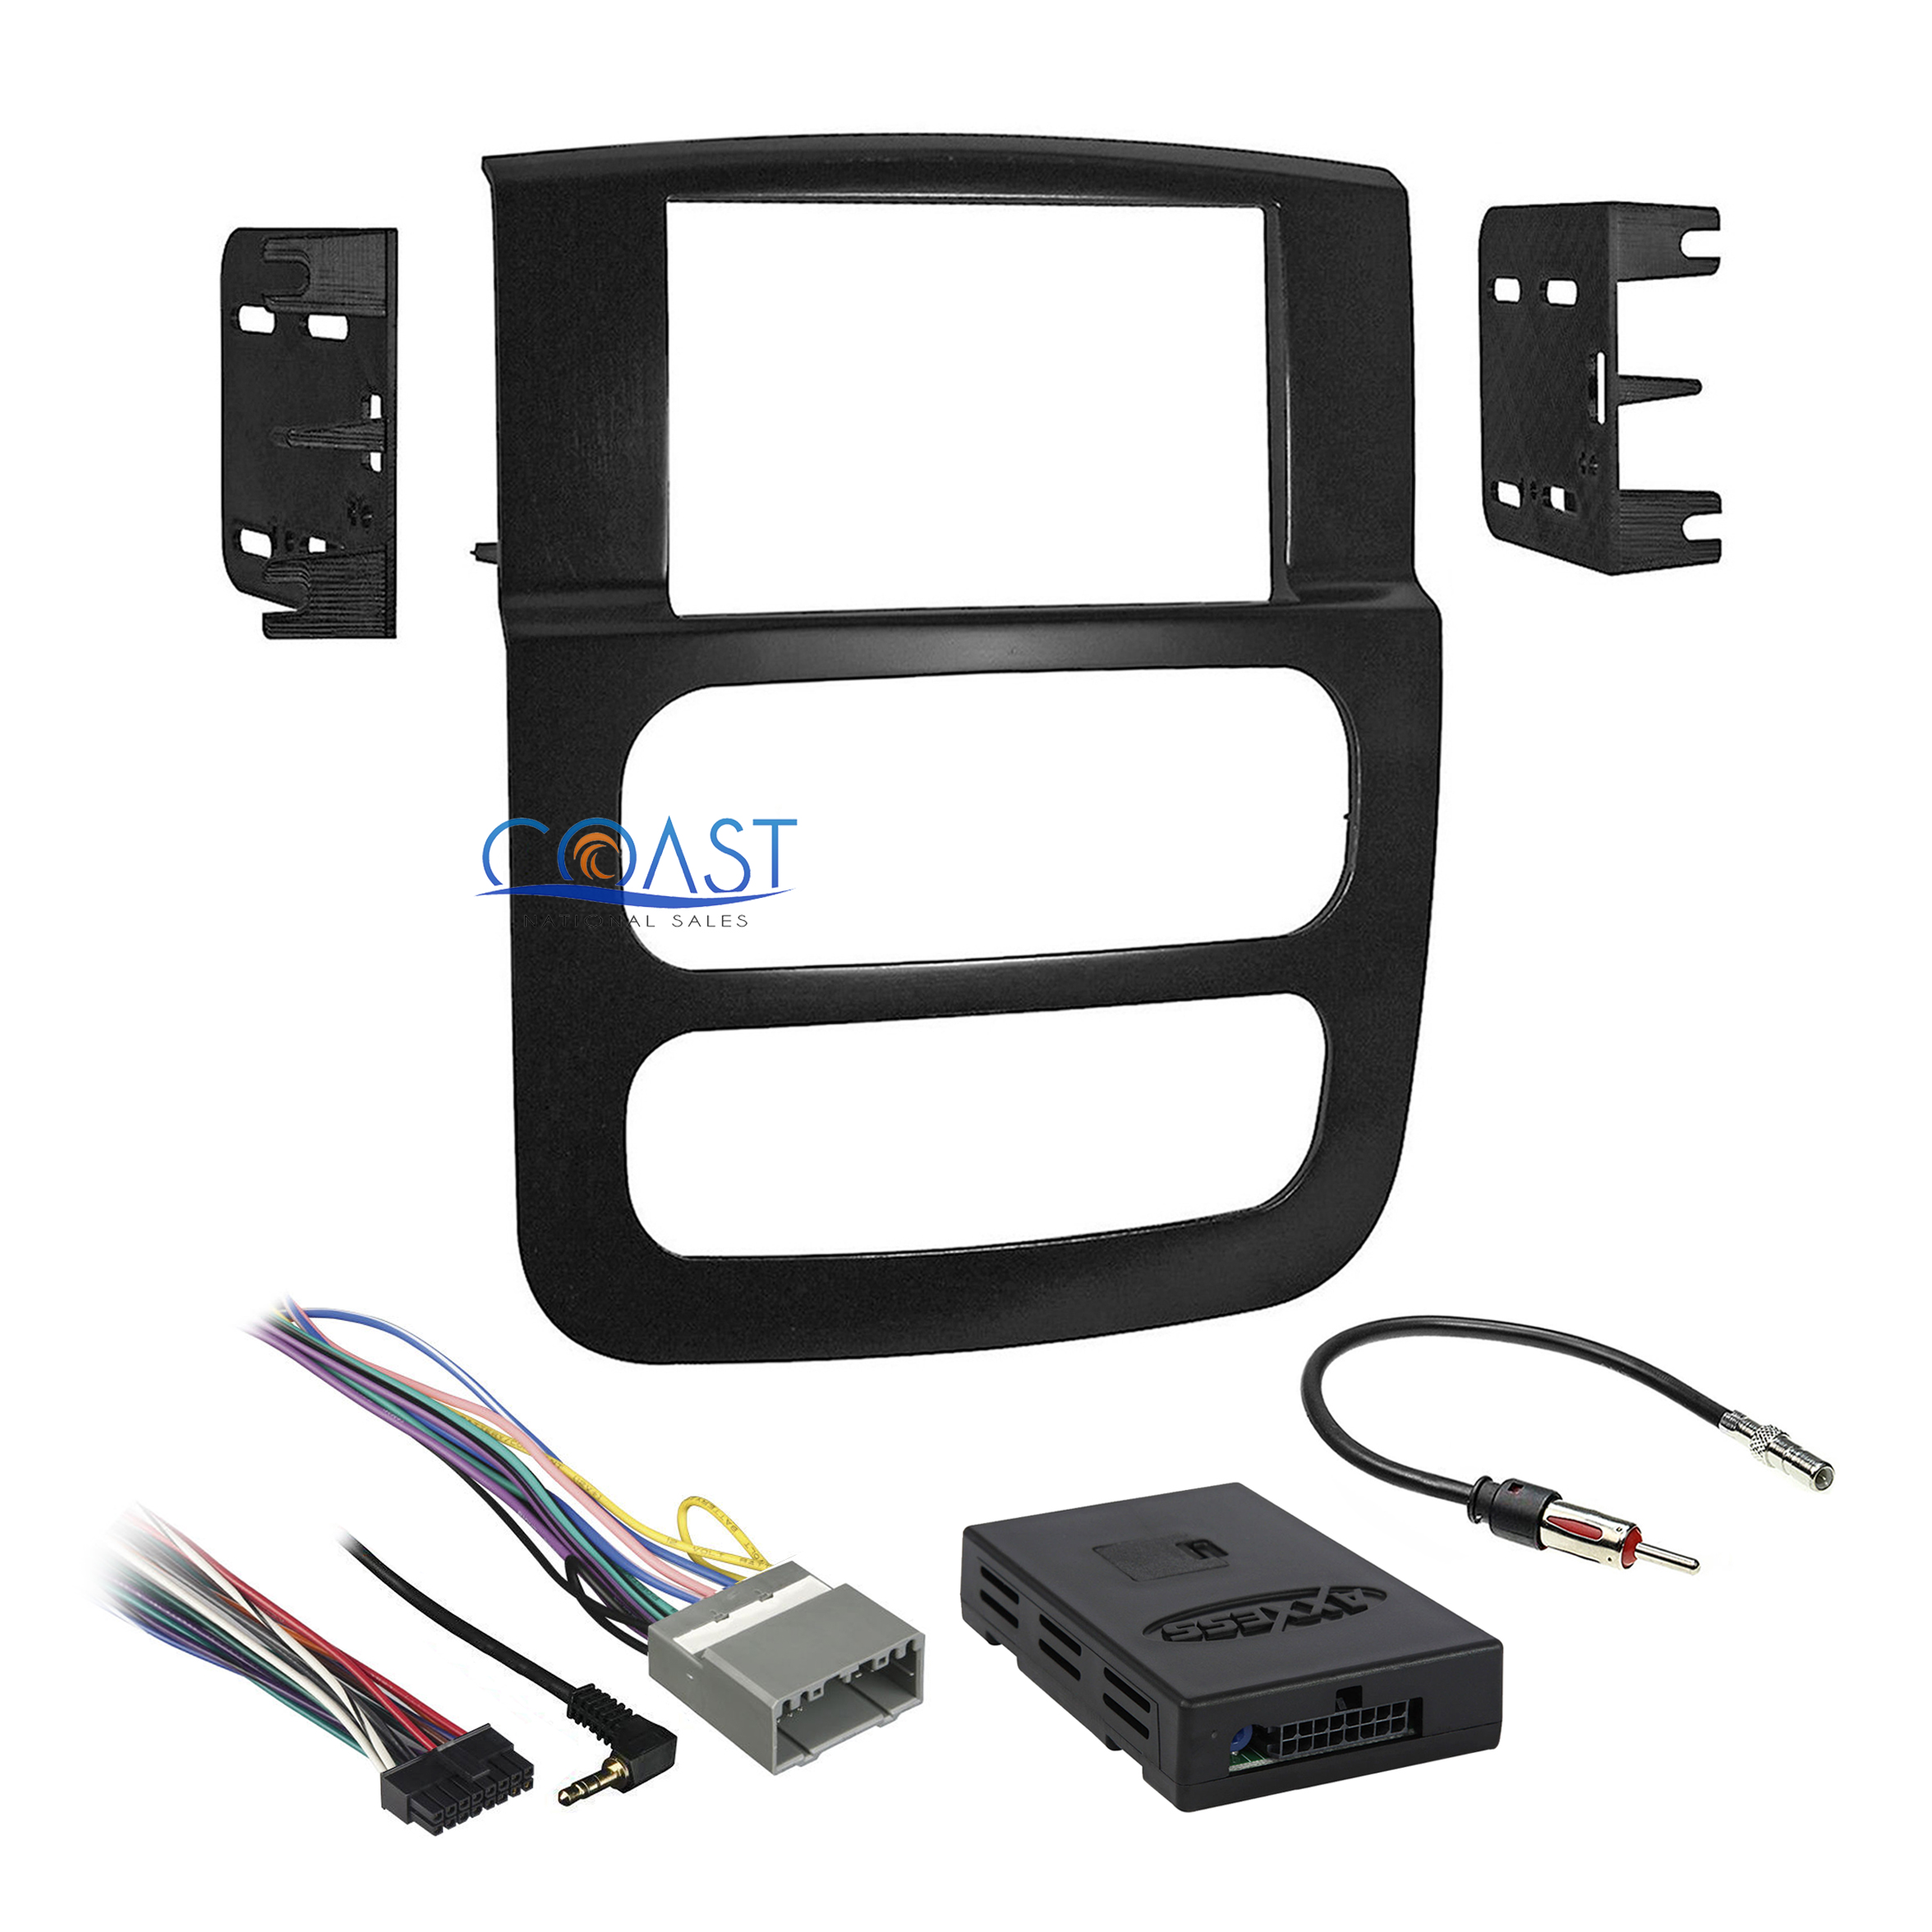 [DIAGRAM_09CH]  Car Radio Stereo Dash Kit Infinity Interface Harness for 02-05 Dodge Ram  Truck | eBay | 2004 Radio Wiring Dodge 1500 Infinity Images |  | eBay